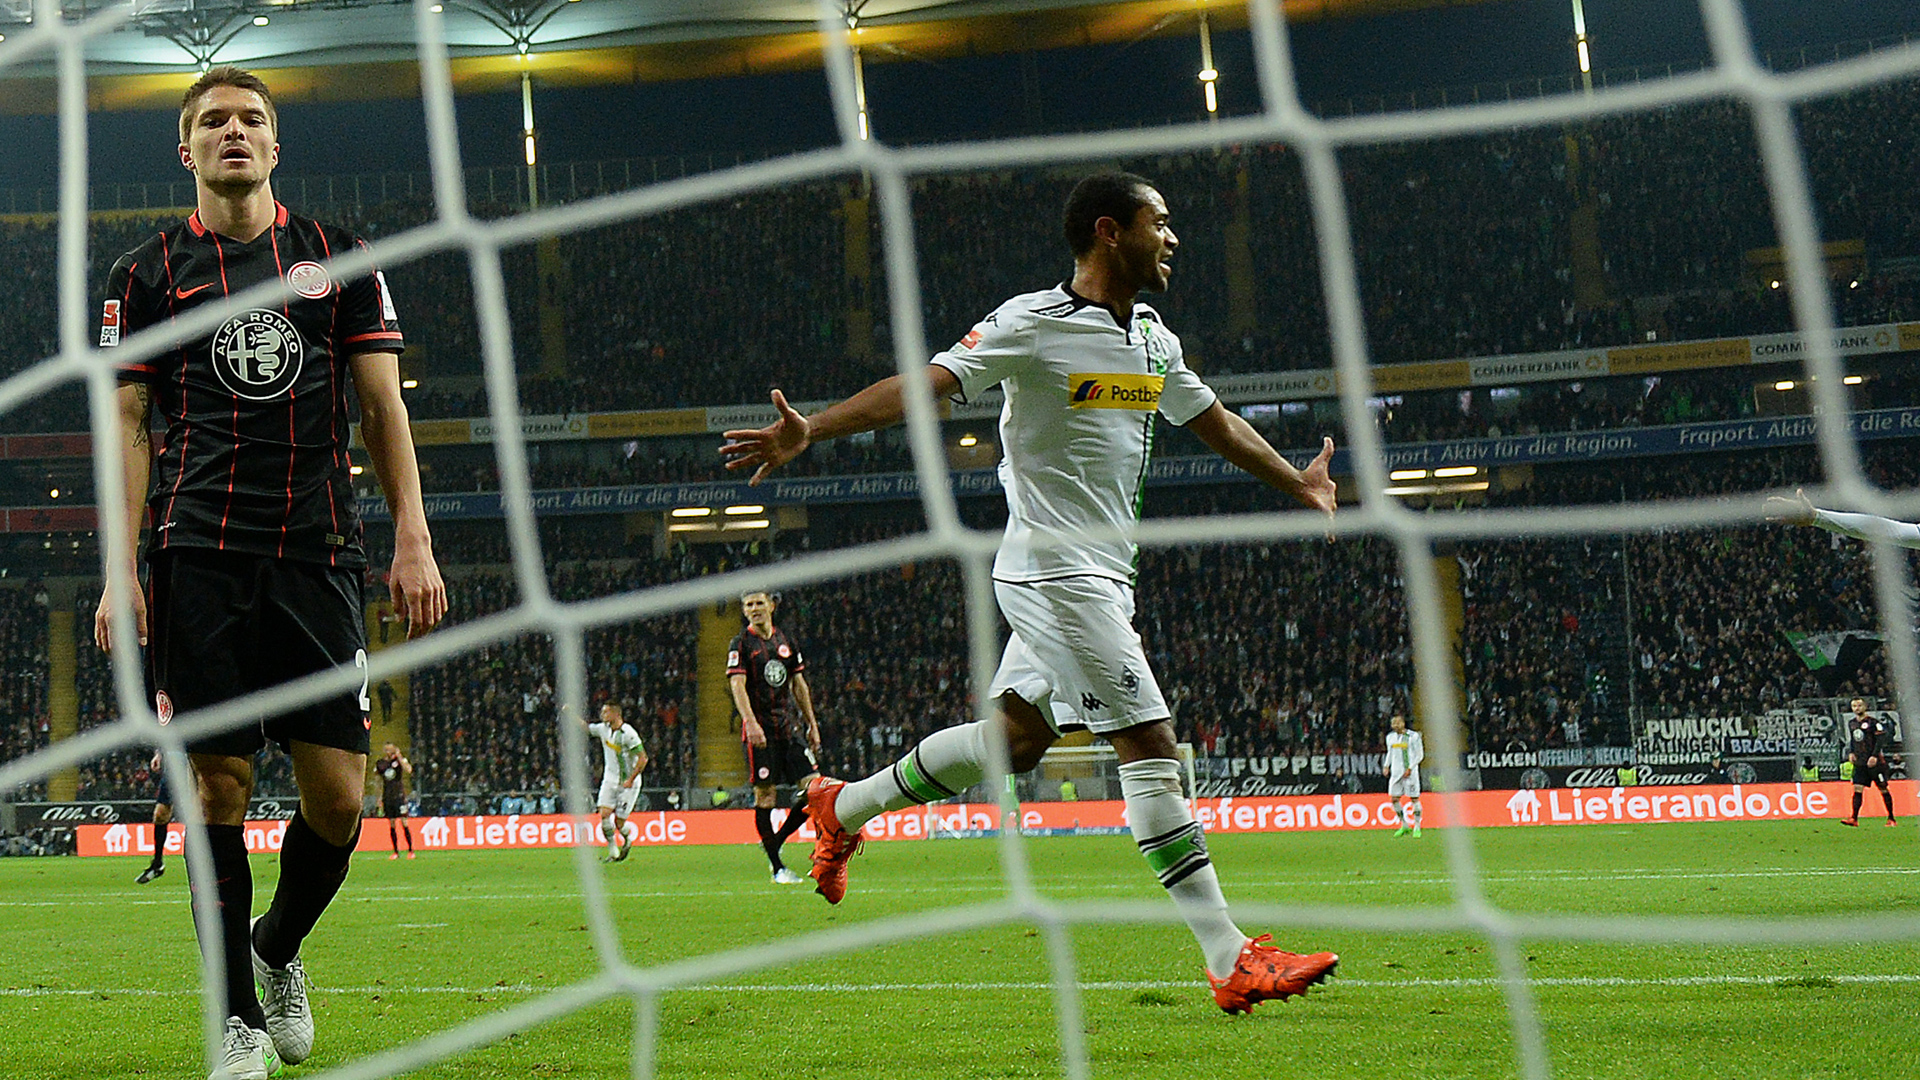 Video: Eintracht Frankfurt vs Borussia M gladbach